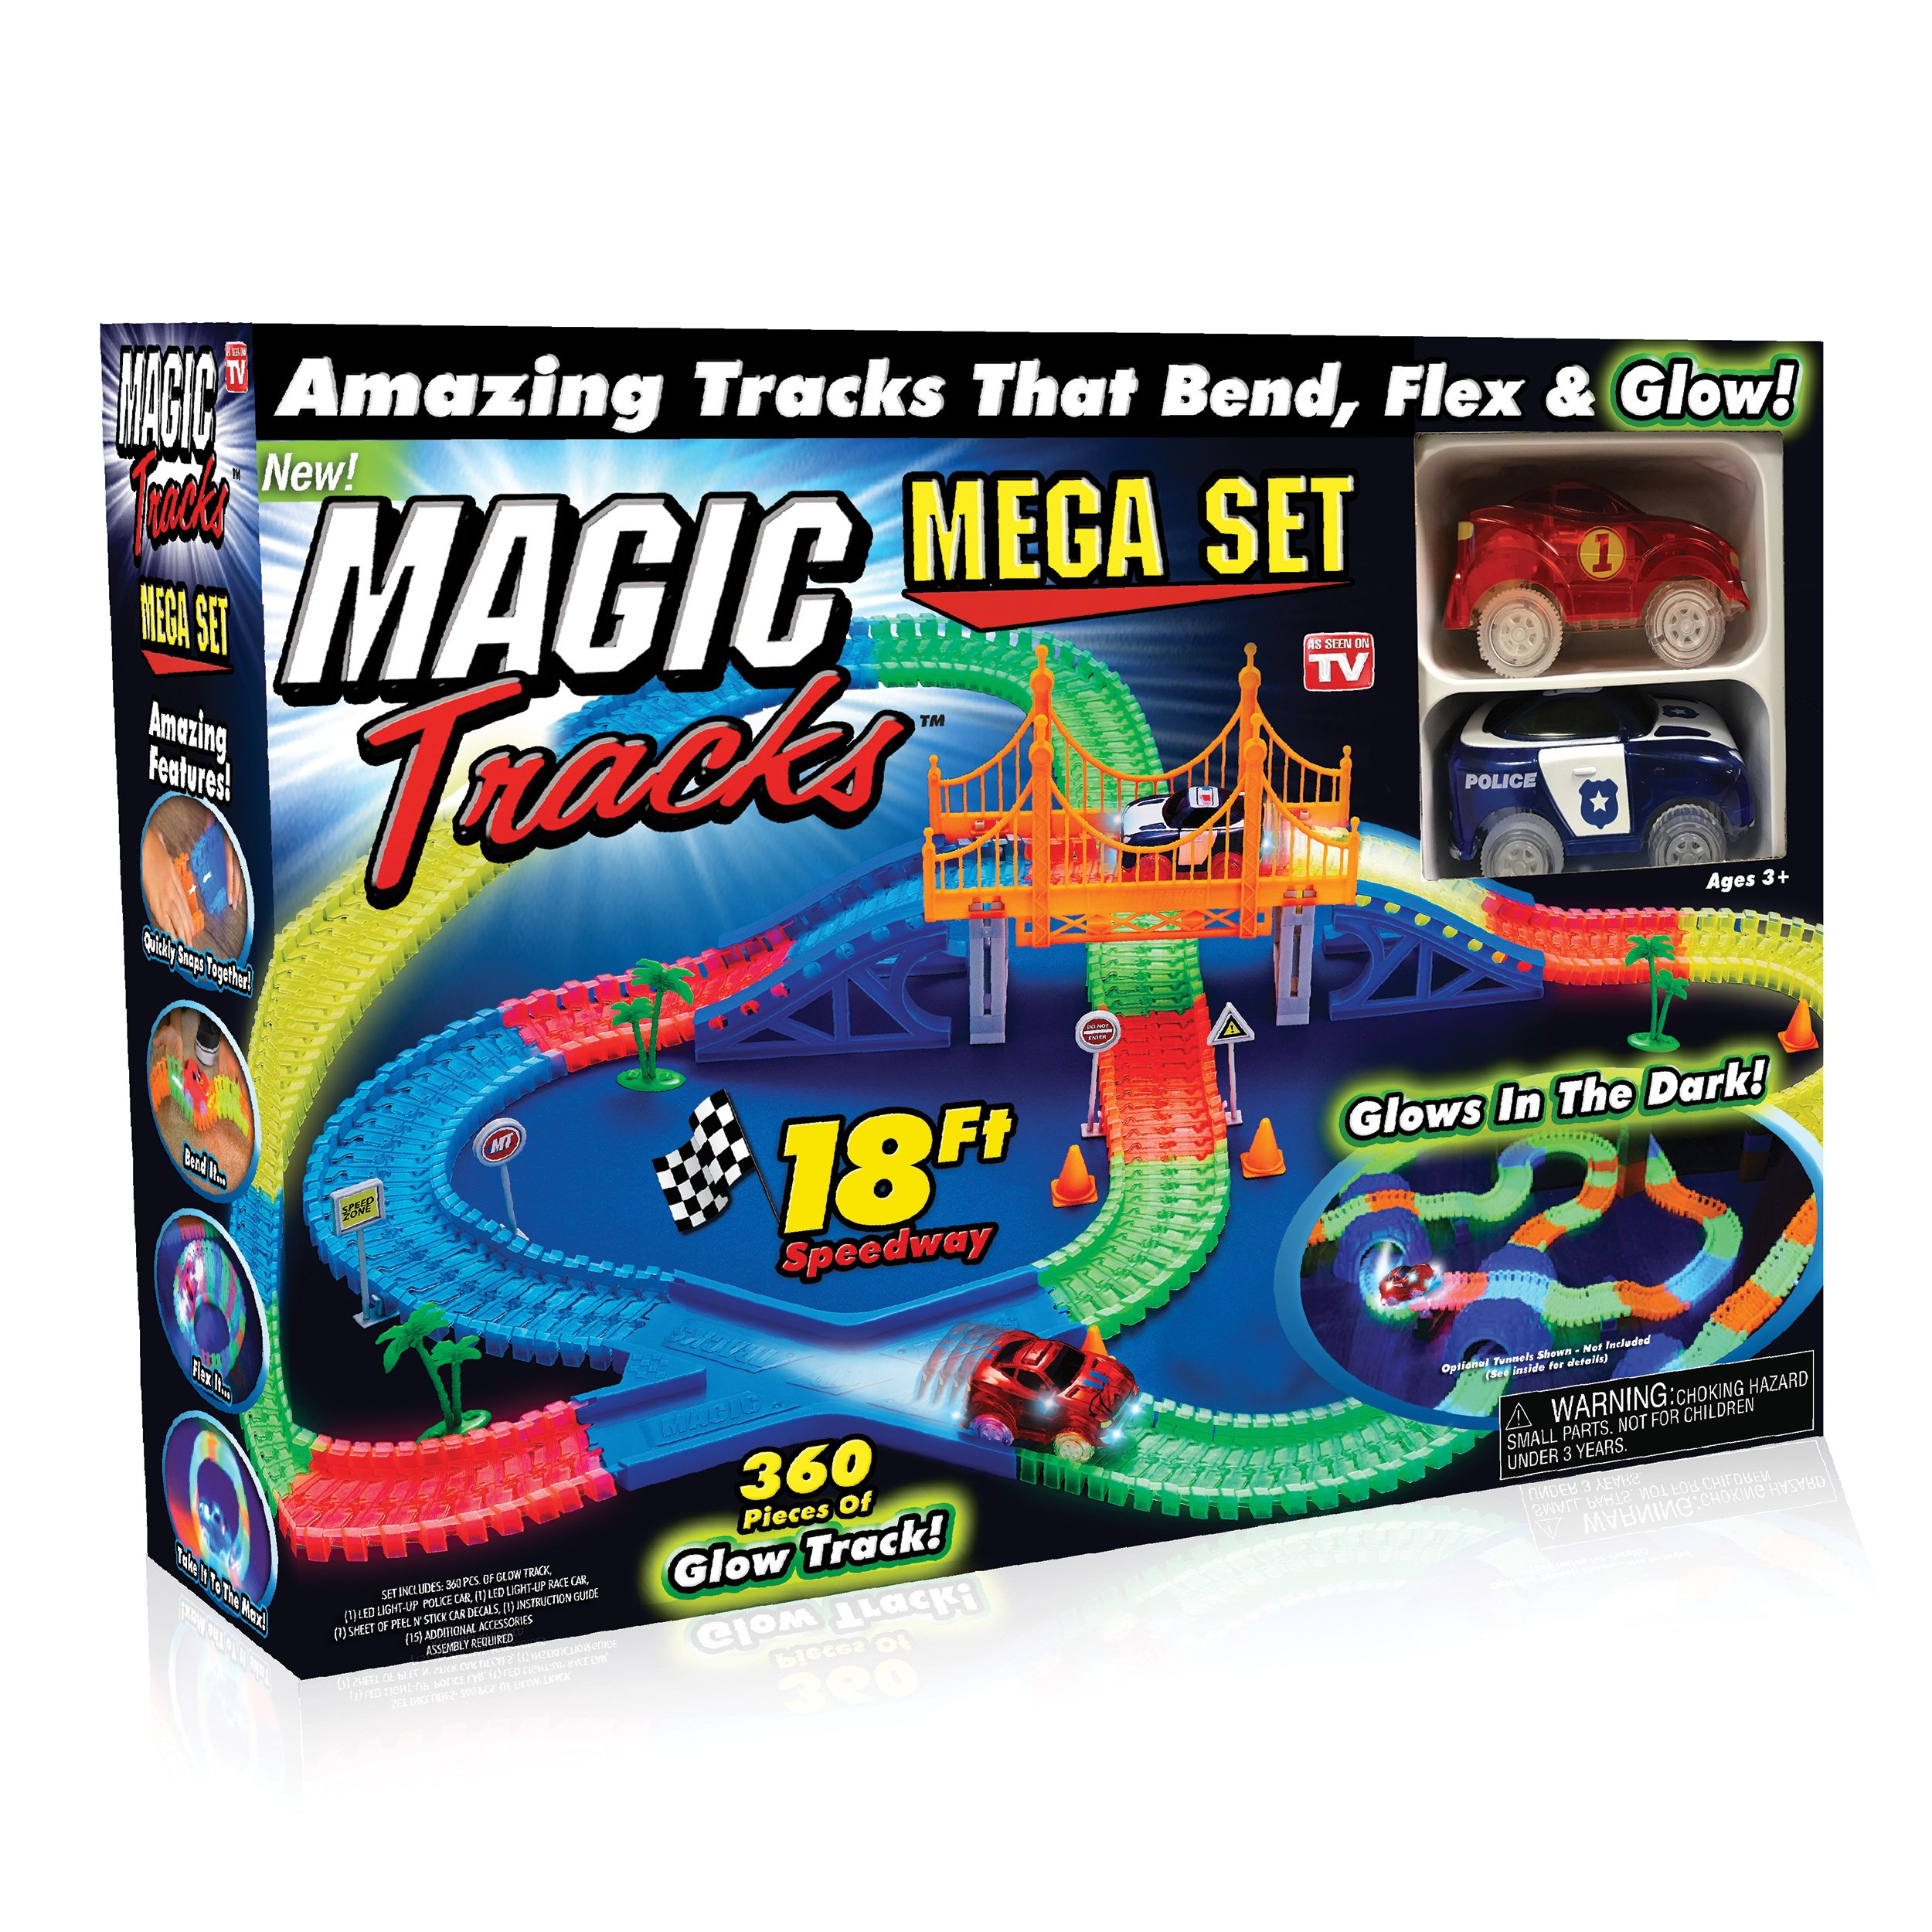 Ontel Magic Tracks Mega Set with 2 LED Race Car and 18 ft. of Flexible, Bendable Glow in The Dark Racetrack, As Seen on TV